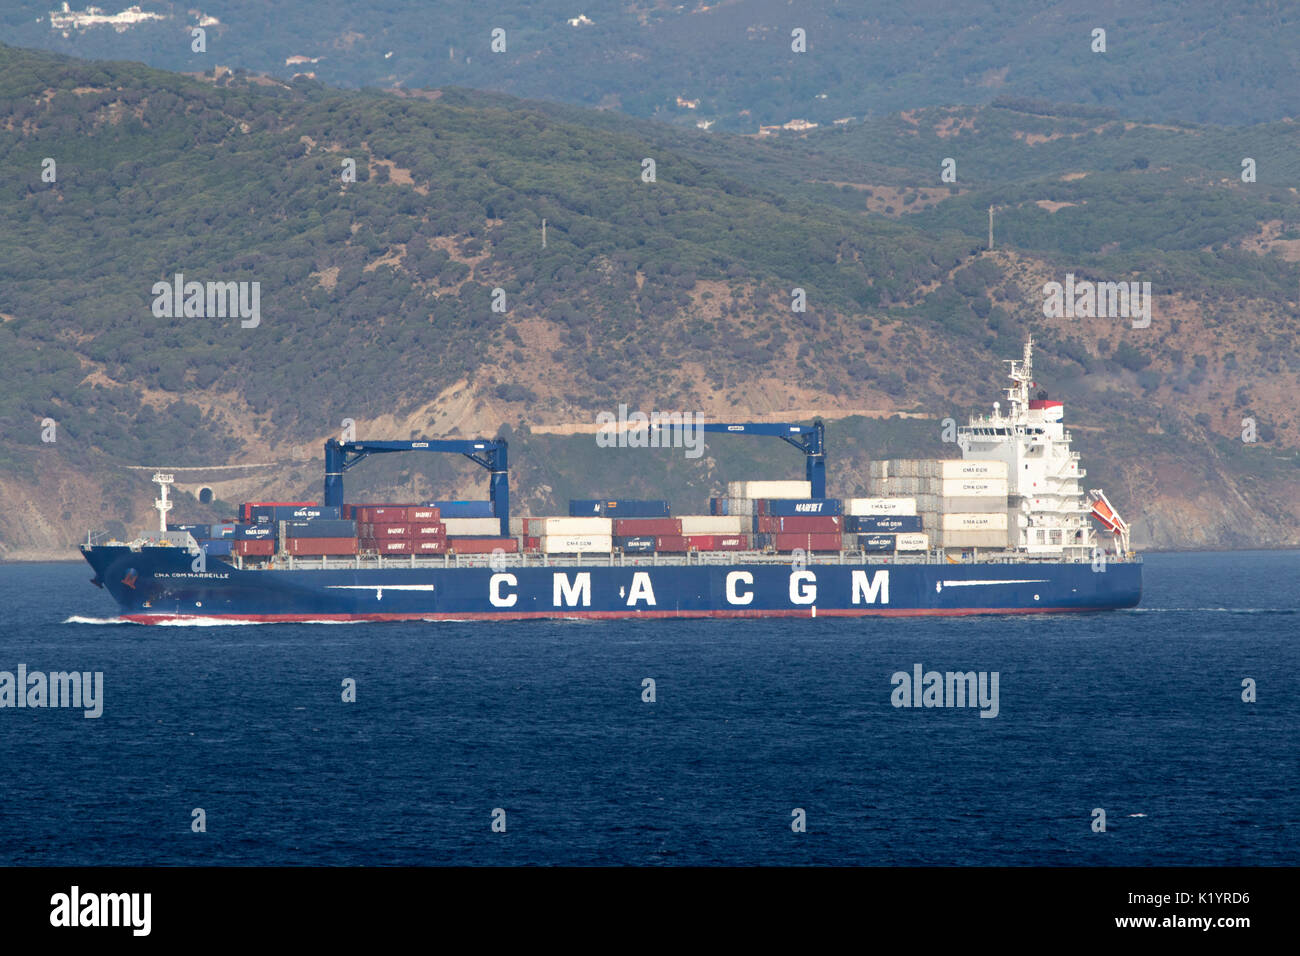 CMA CGM Marseille Container Ship in the port of Gibraltar in the Mediterranean Sea - Stock Image